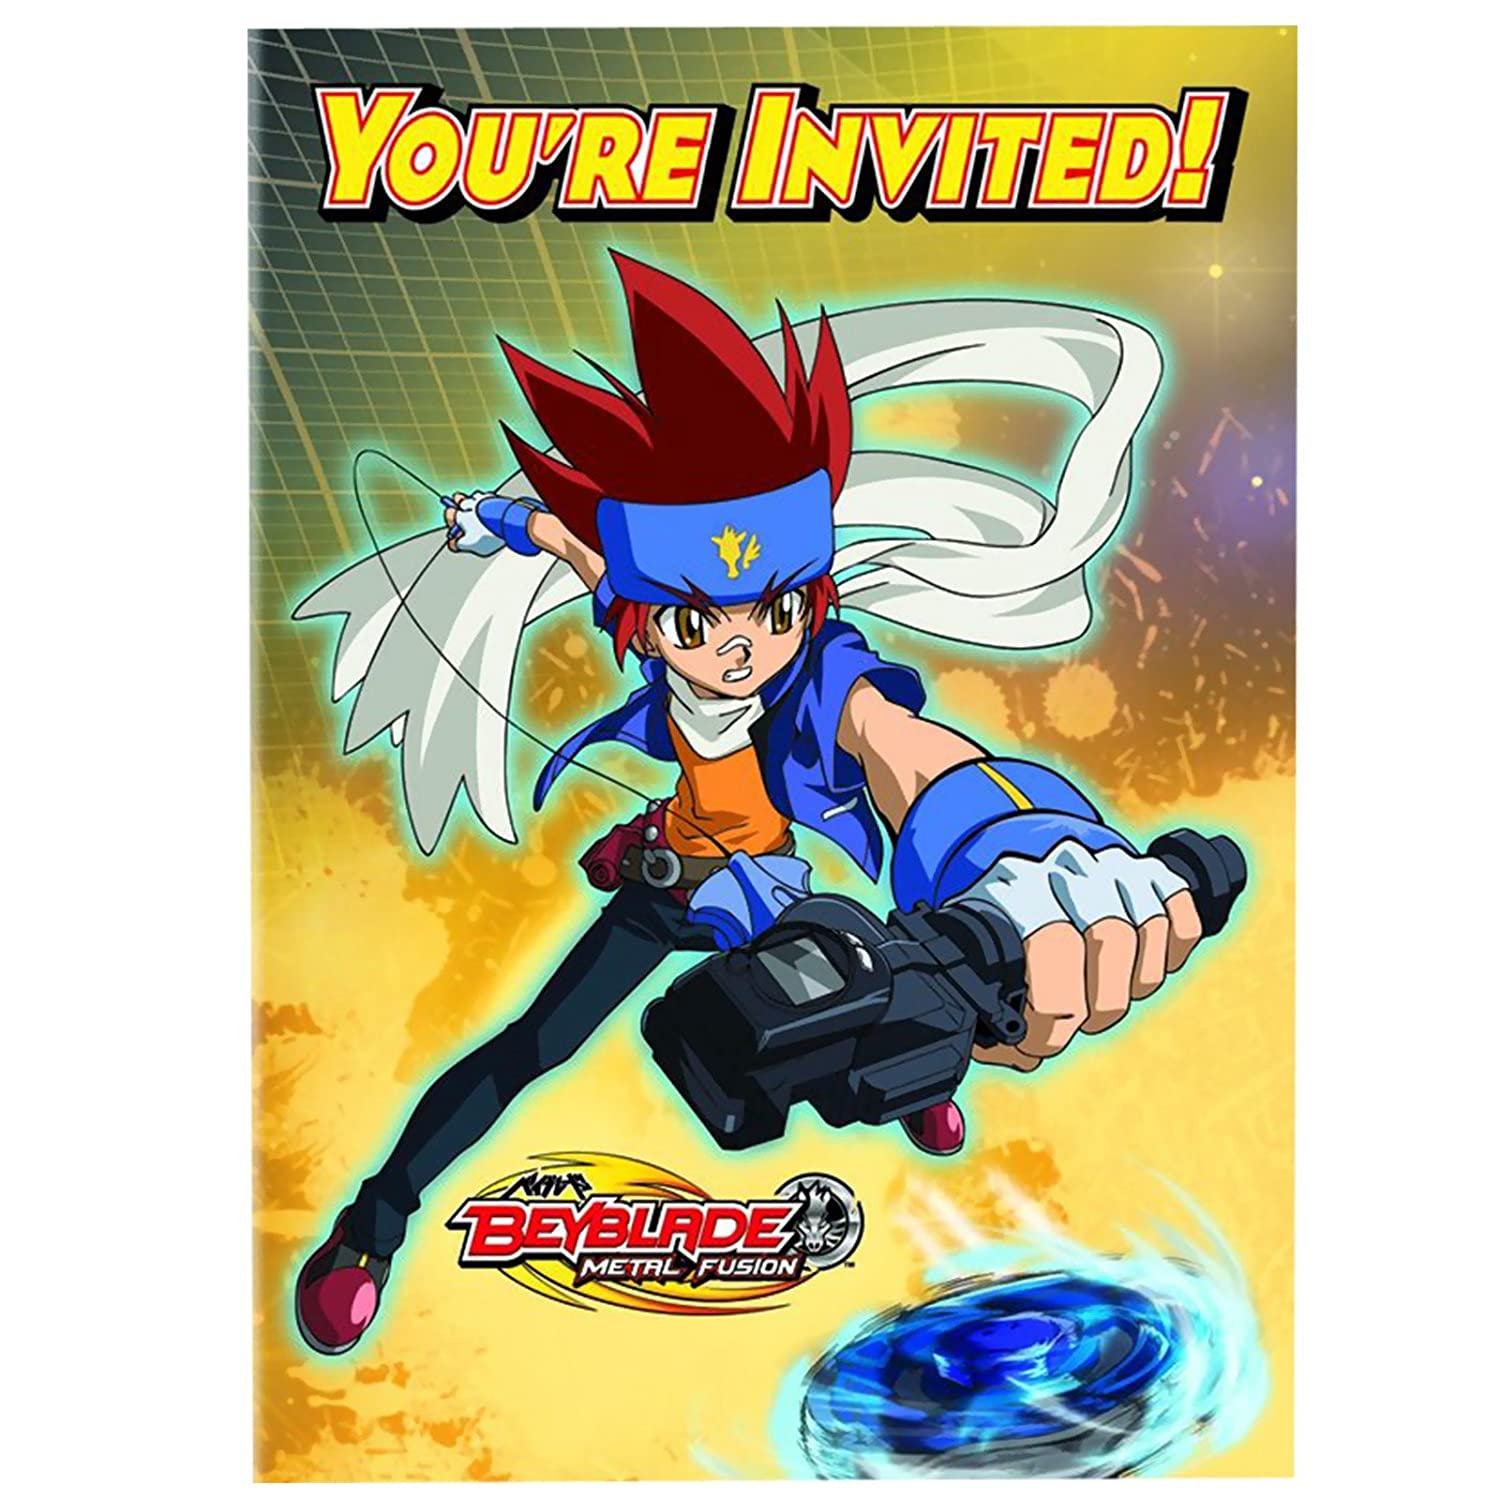 Amazoncom Beyblade Invitations w Envelopes 8ct Toys Games